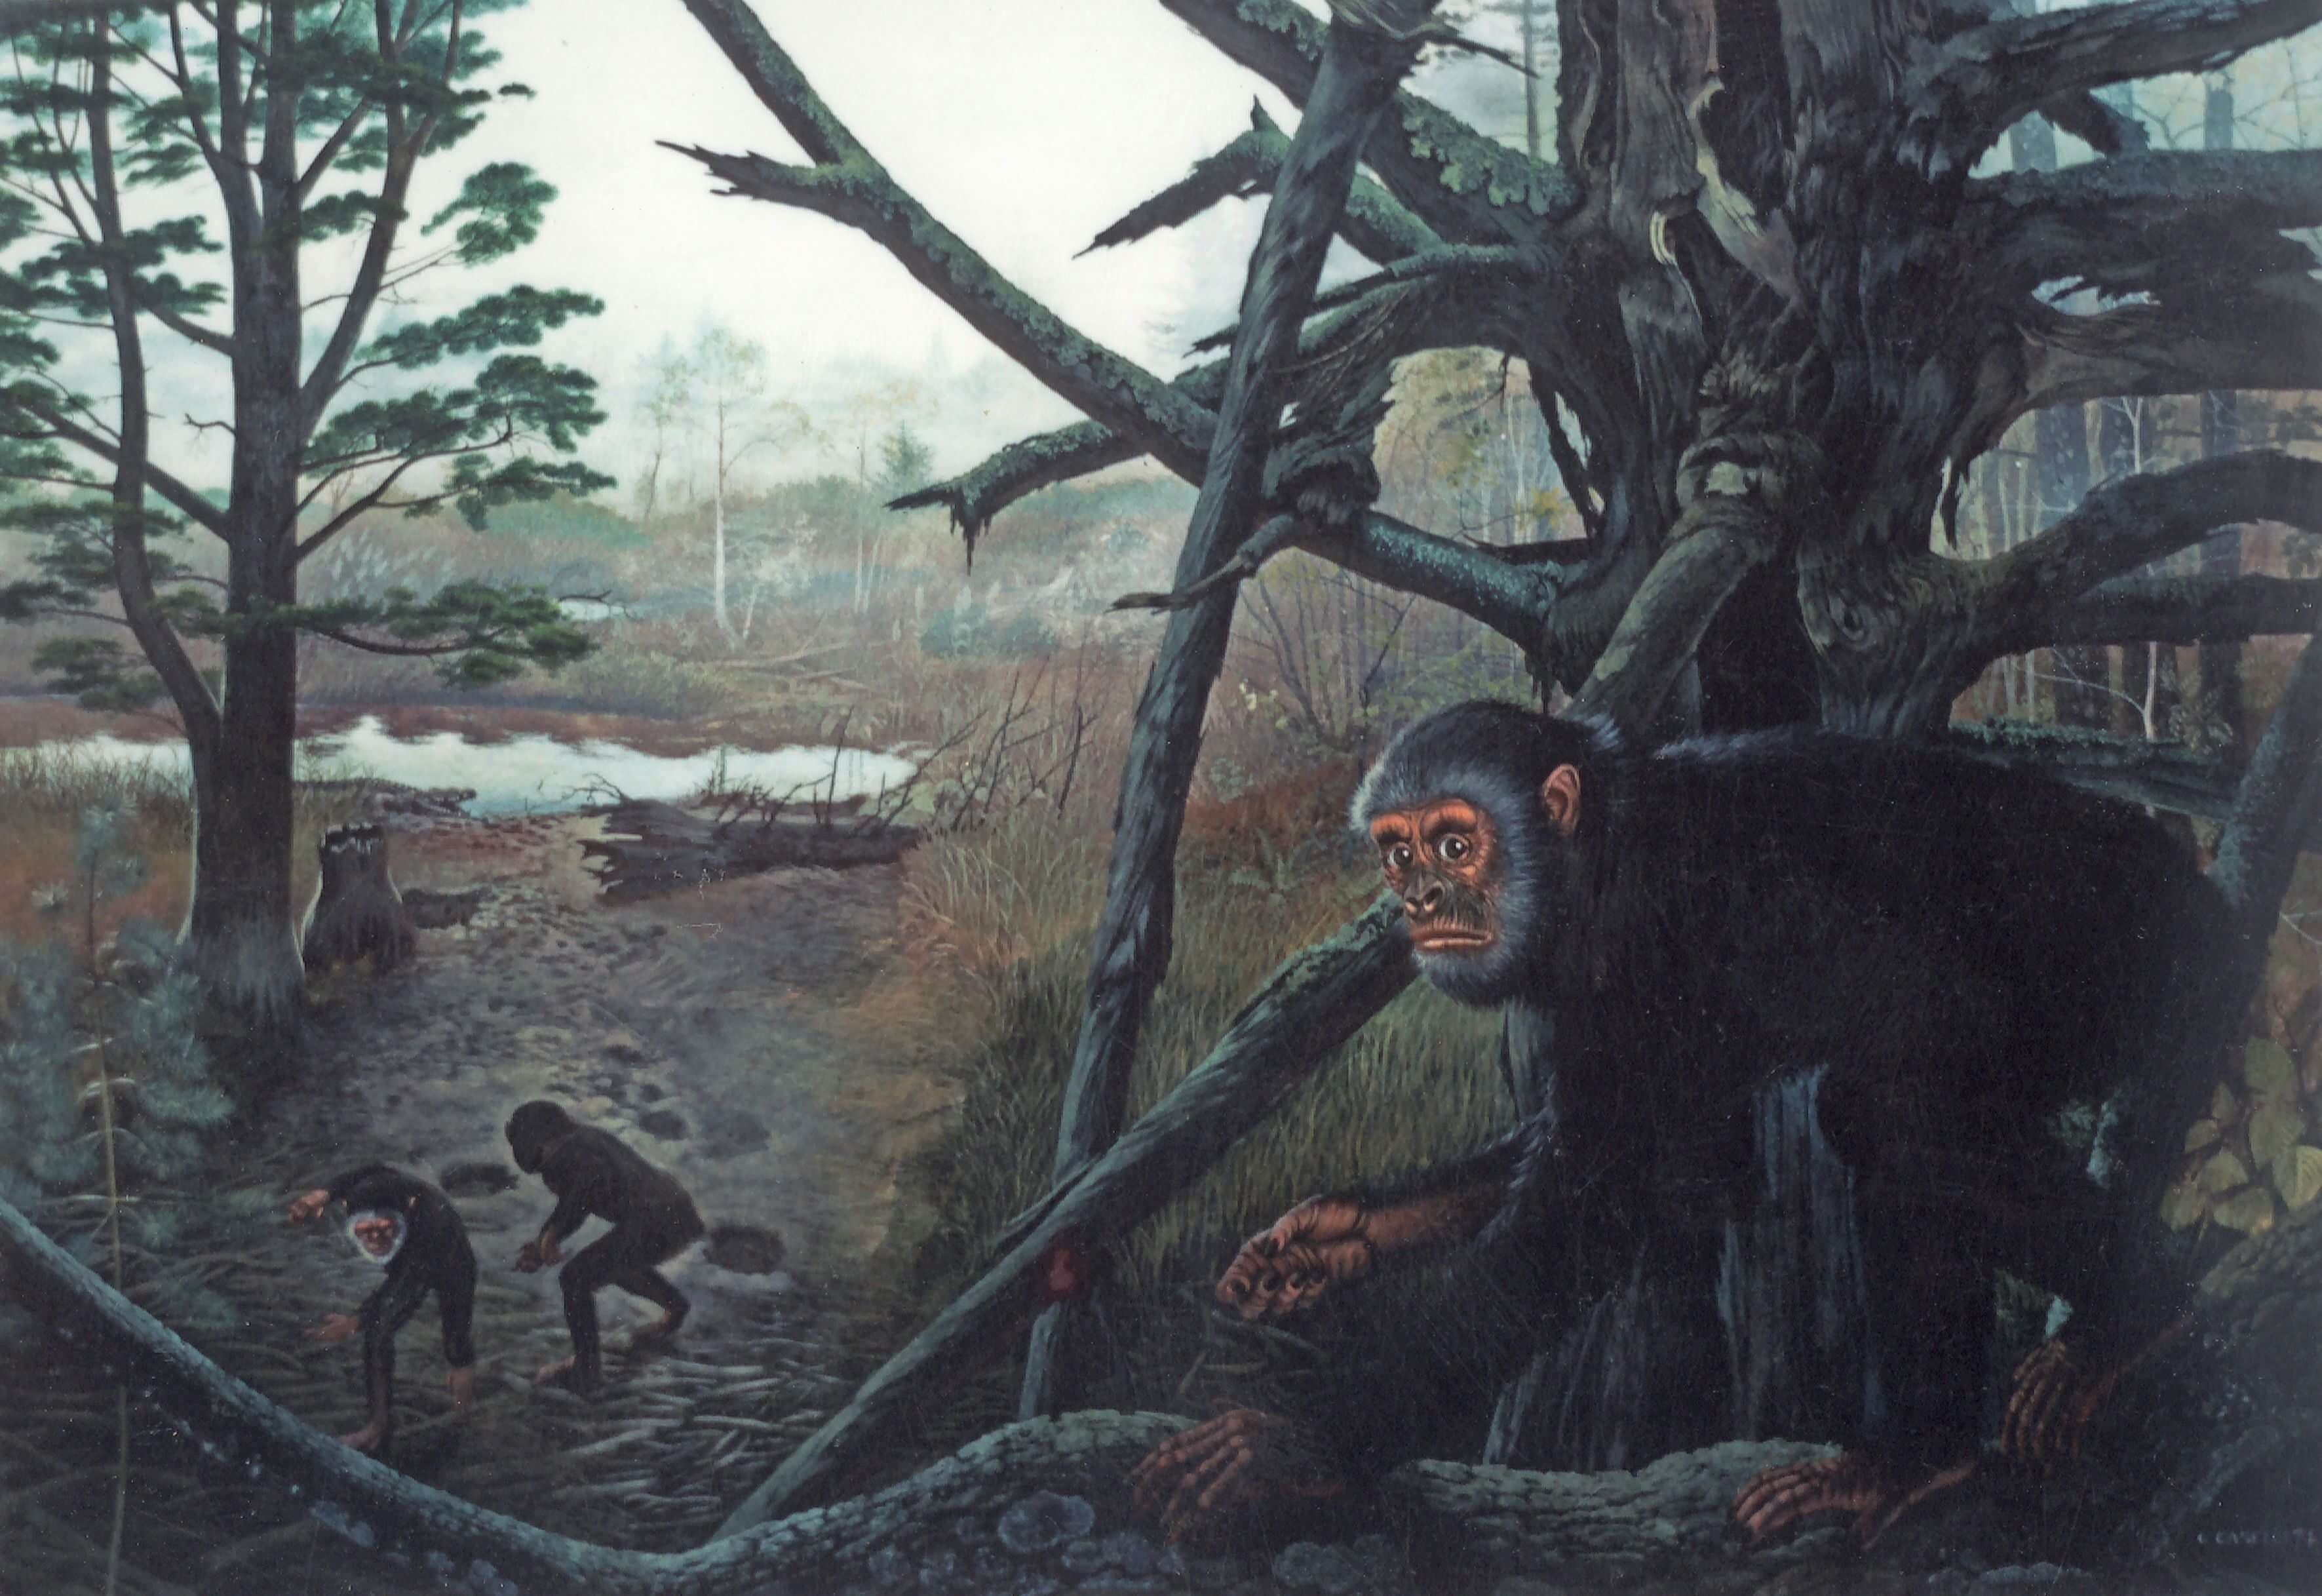 Why the ancient apes did not know how to walk on two legs and lived on trees?